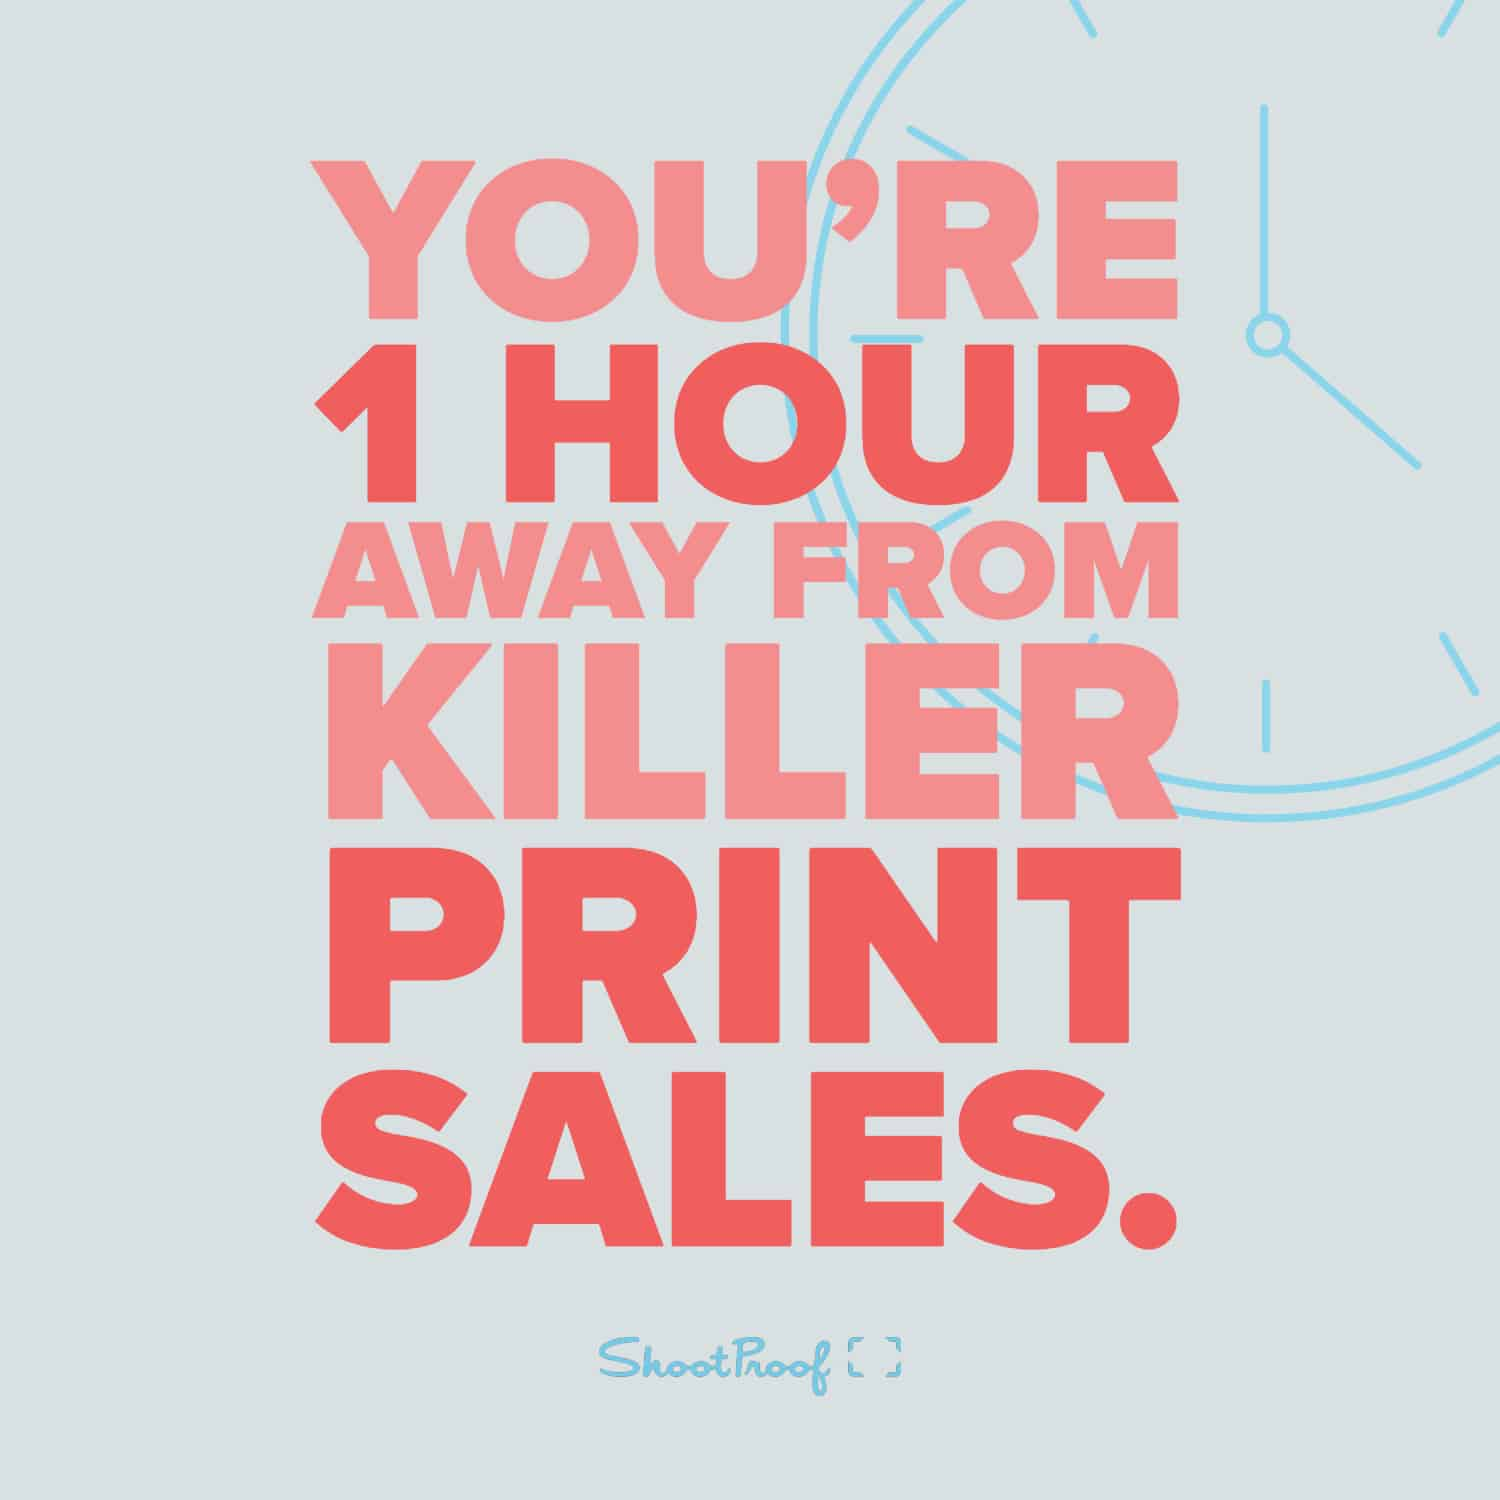 How To Dramatically Increase Print Sales With 2 Easy Emails